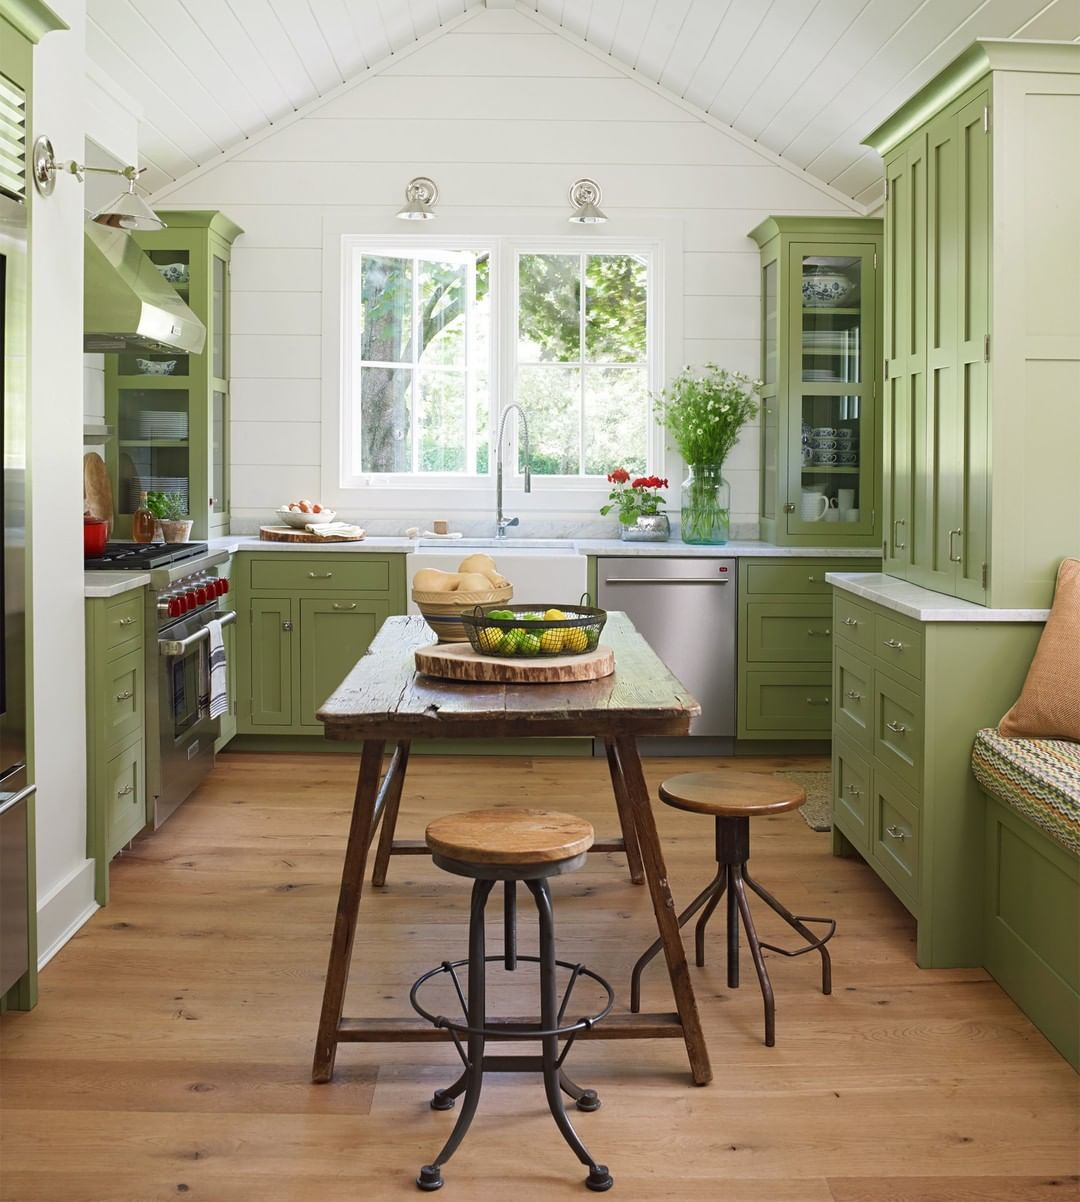 Better Homes Gardens On Instagram This Apple Green Kitchen Is Making Us Green With Envy The Green Kitchen Cabinets Country Kitchen Kitchen Inspirations